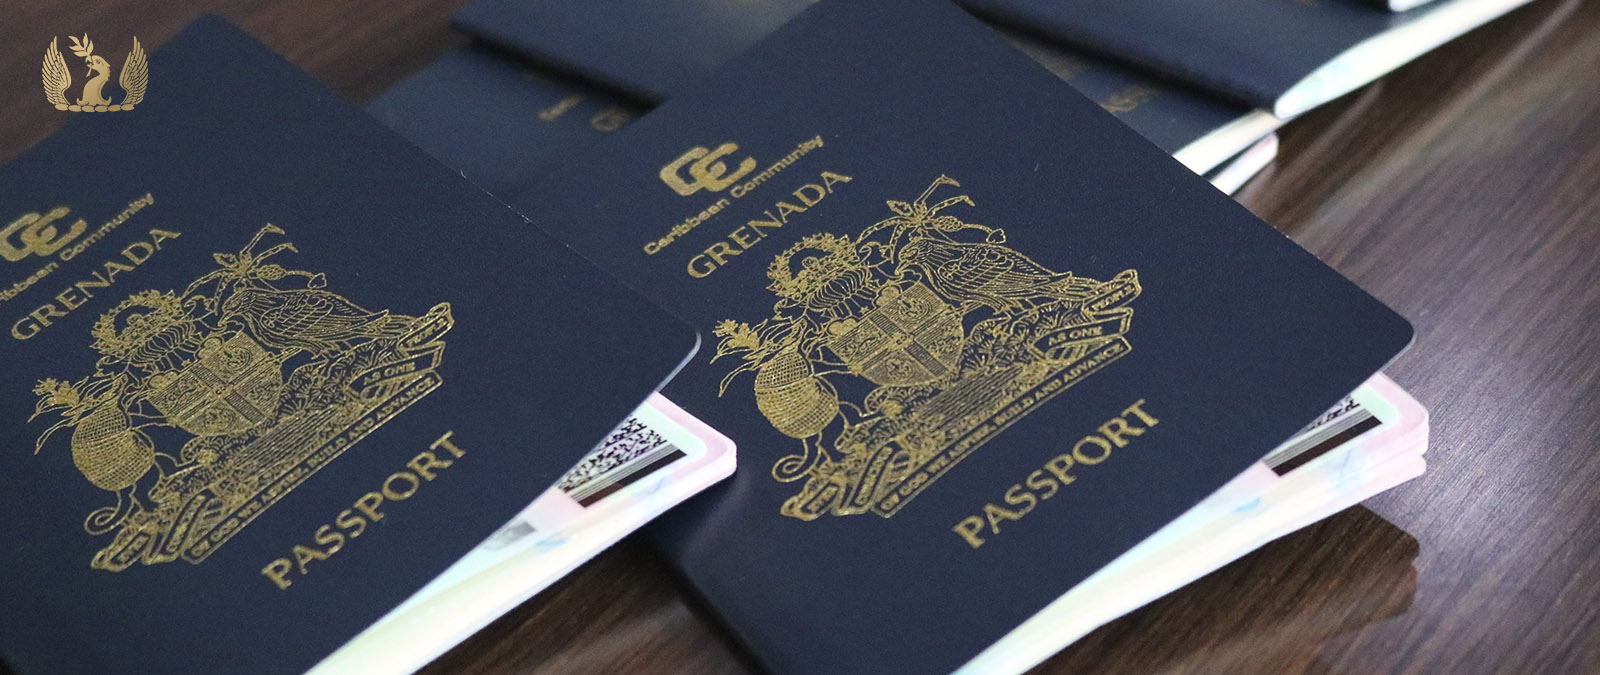 Grenada passport allows visa-free and visa-on-arrival travel to 120+ countries.